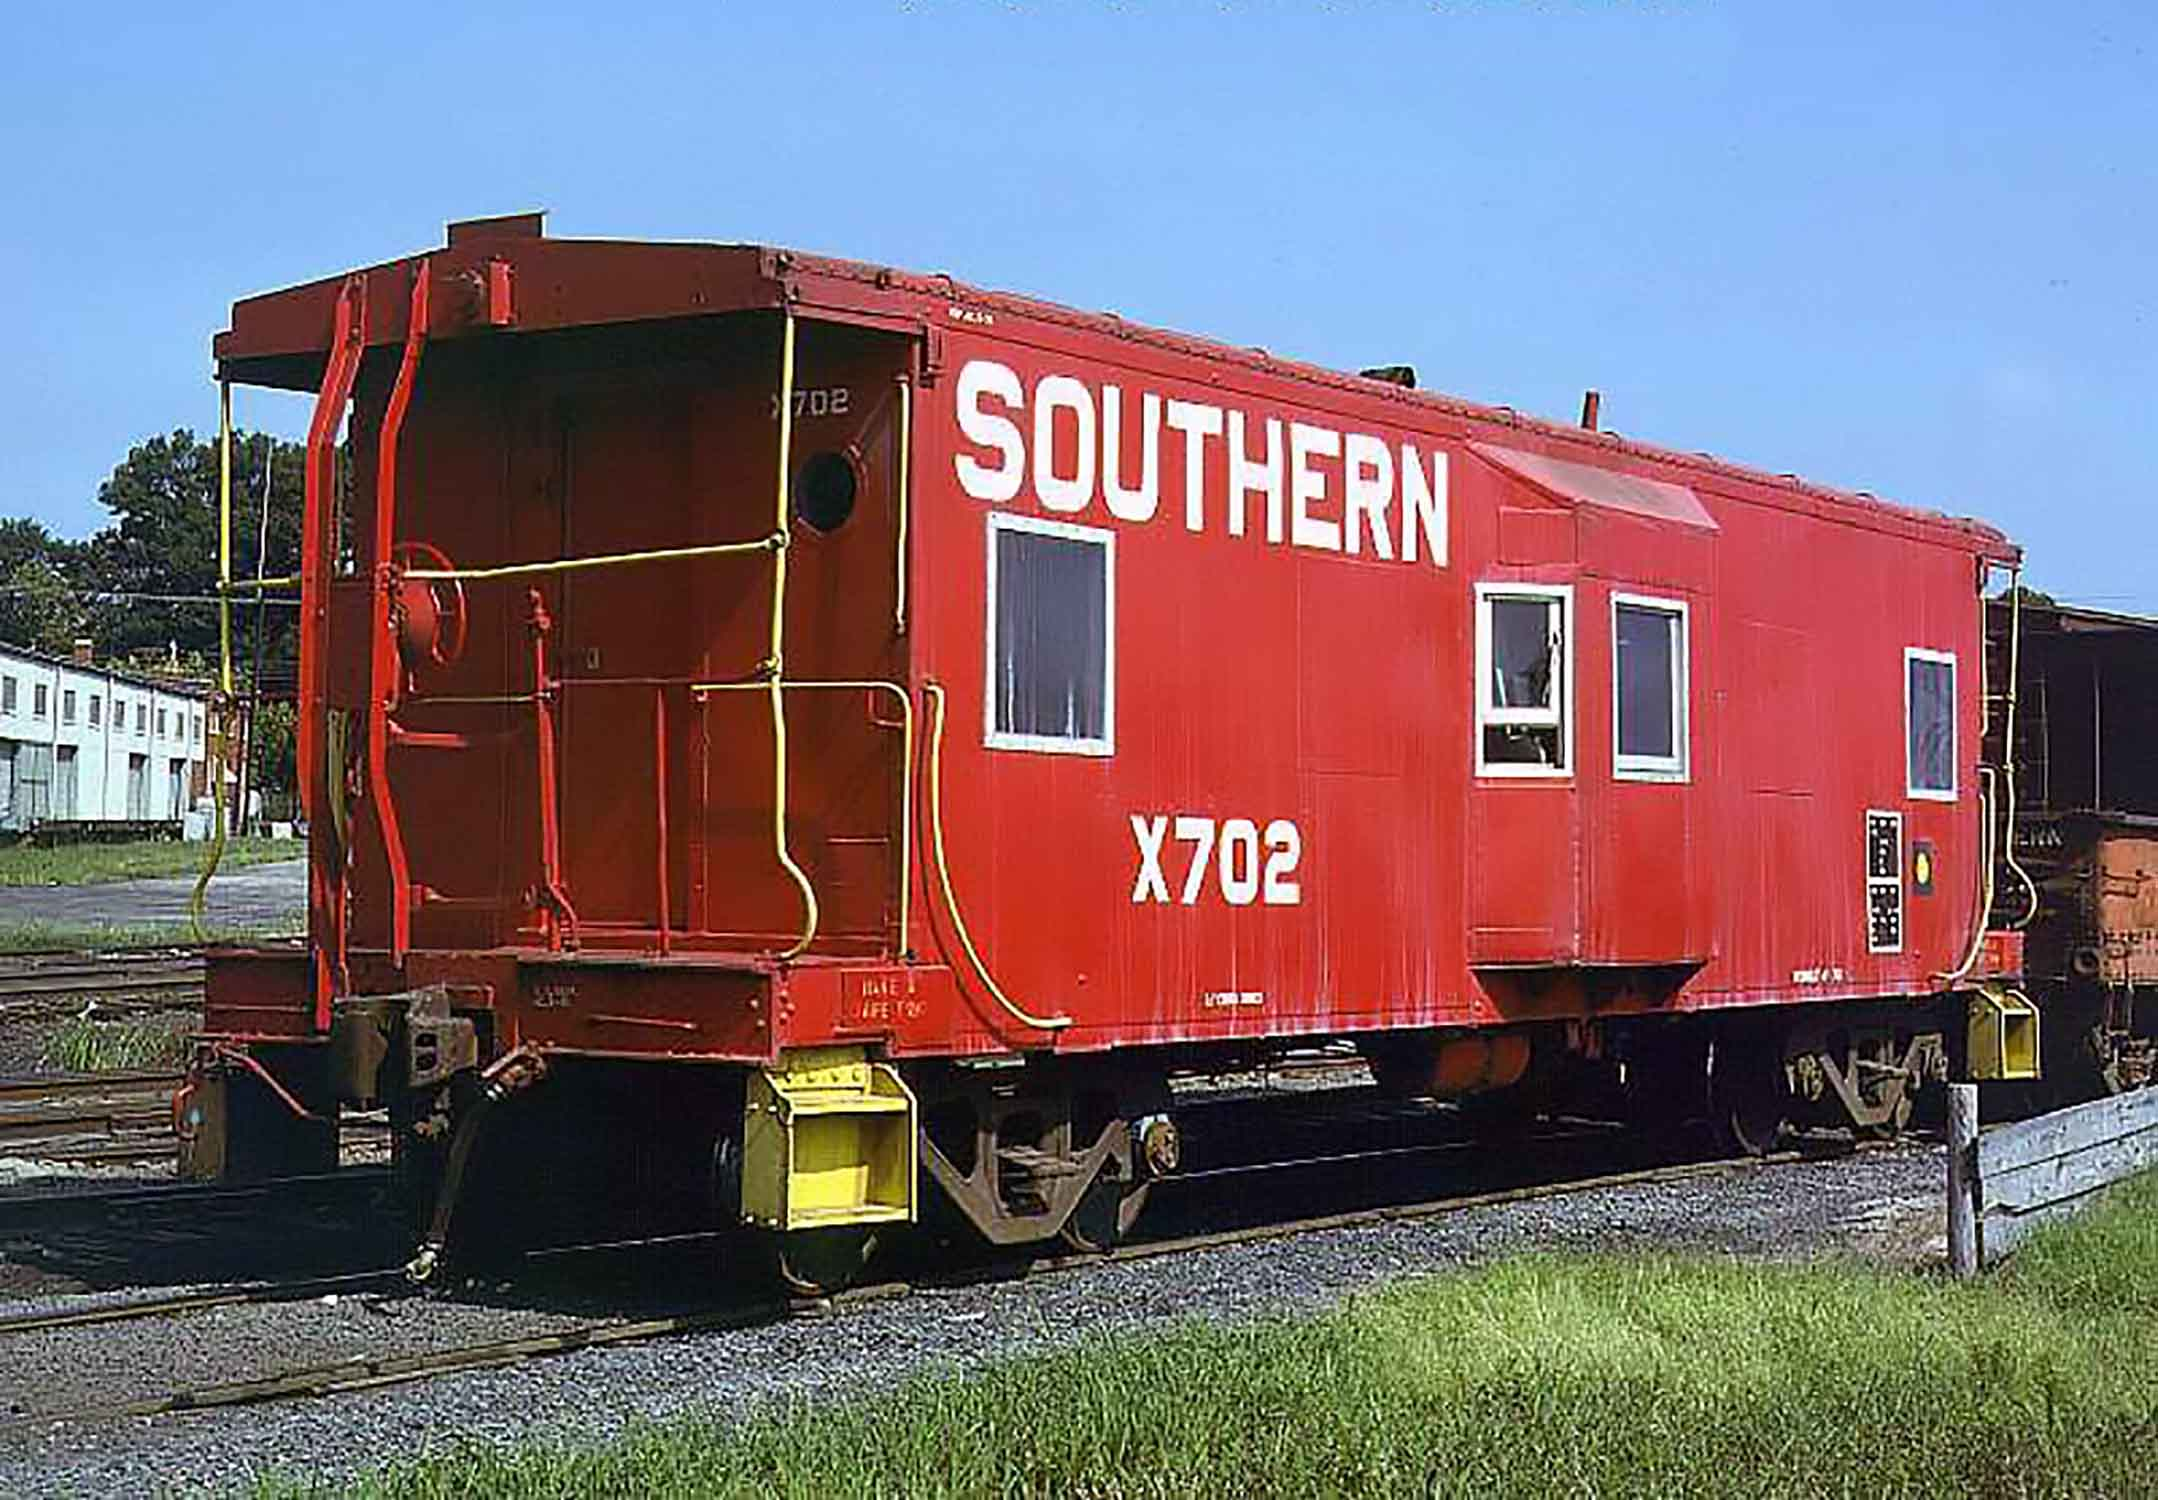 Read bay window caboose on railroad tracks under a blue, cloudless sky in daytime.